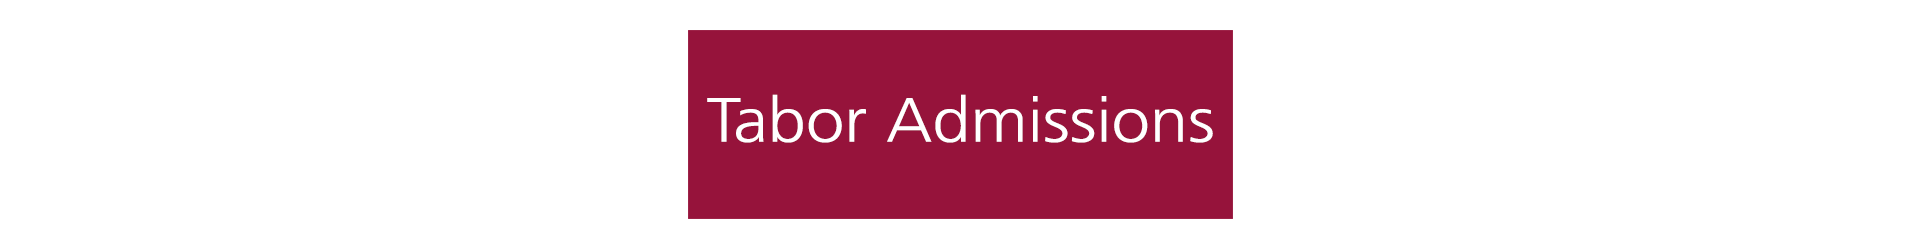 Tabor Admissions